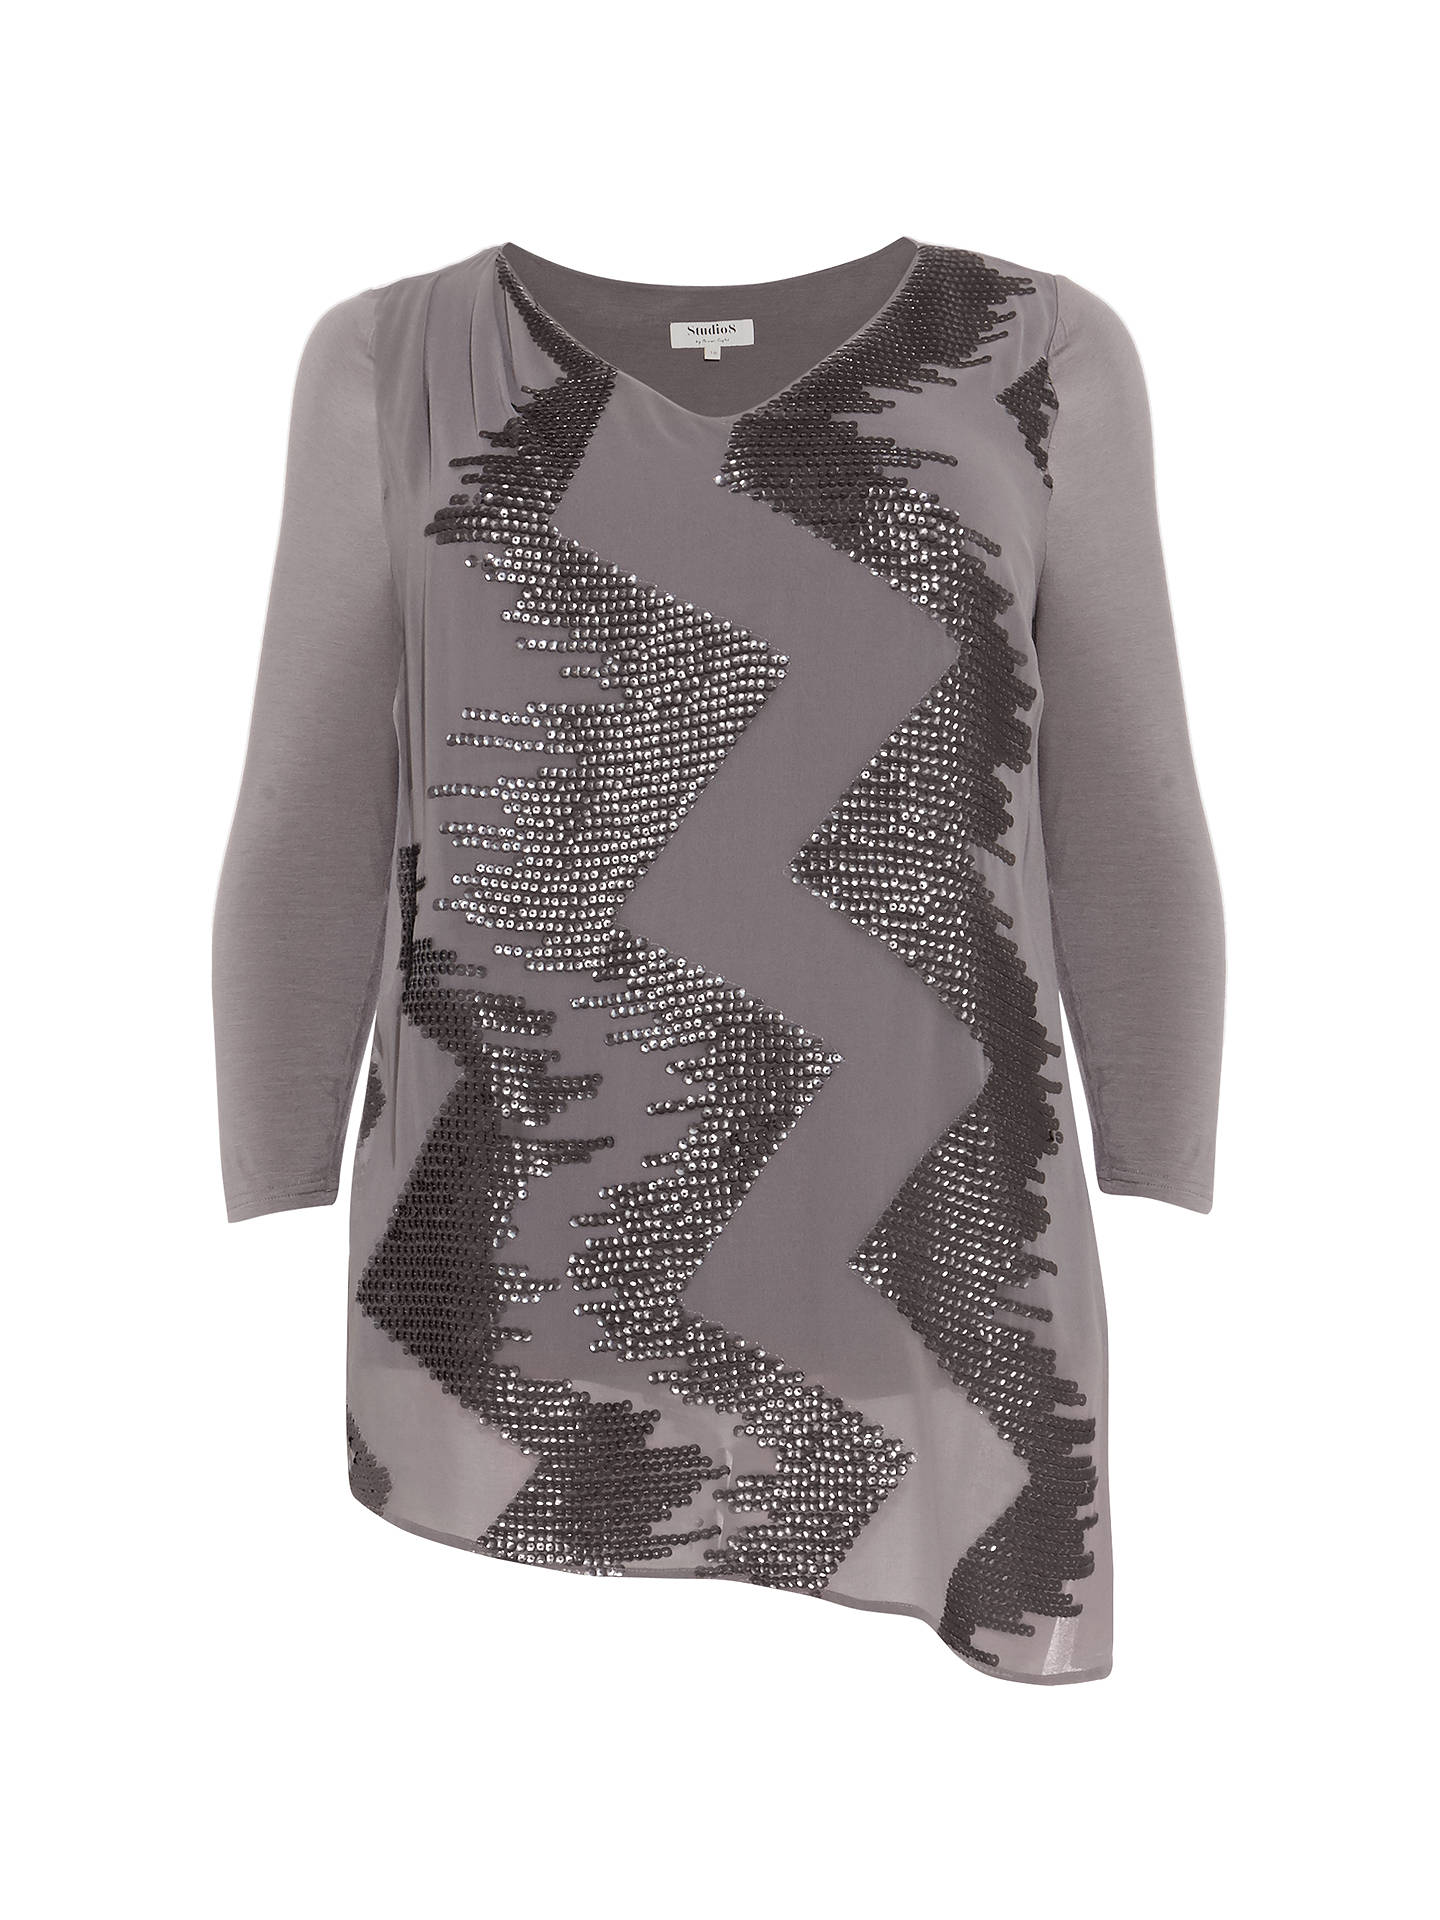 Buy Studio 8 Nikita Sequin Top, Khaki, 24 Online at johnlewis.com